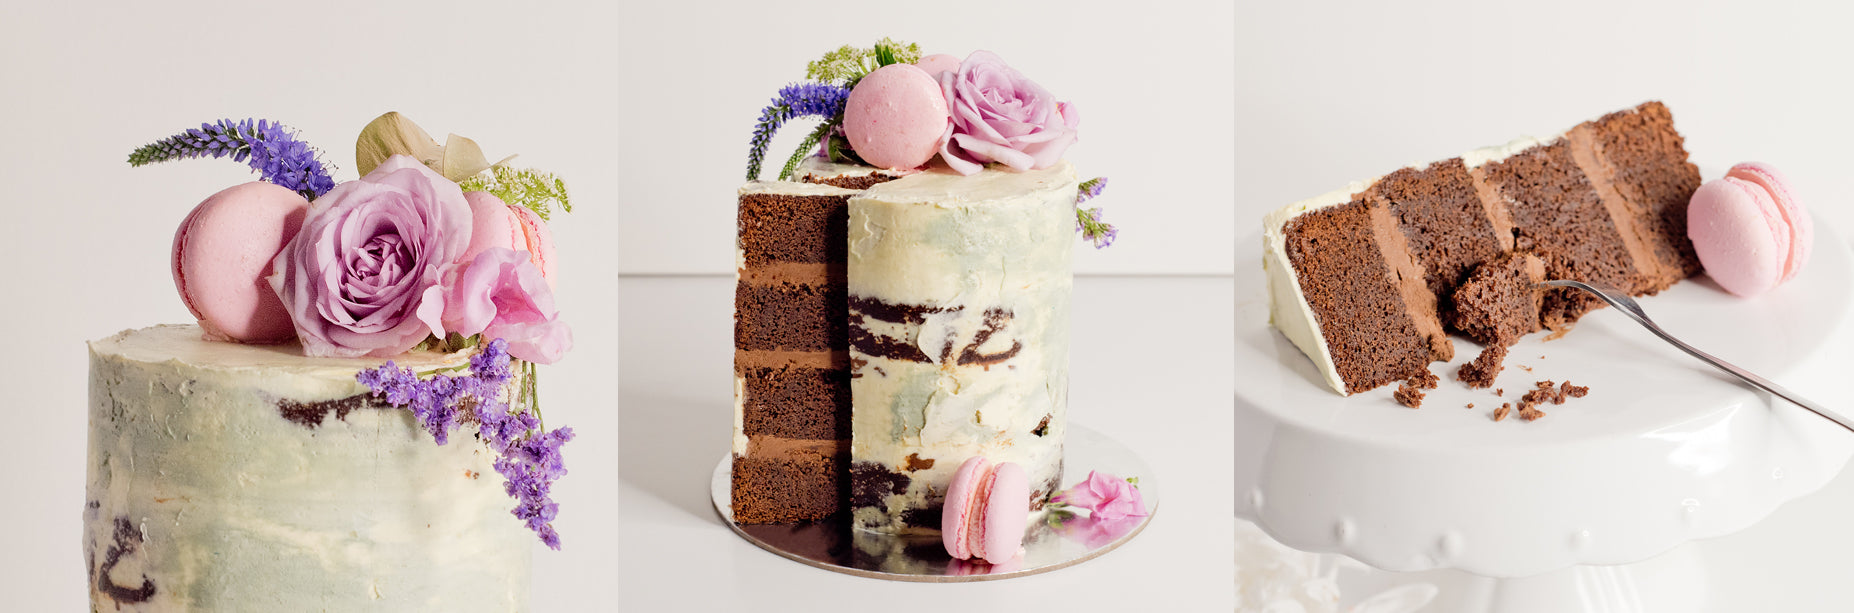 Verucca's Cakes home delivered and pick up cakes, cupcakes and macarons from Brisbane